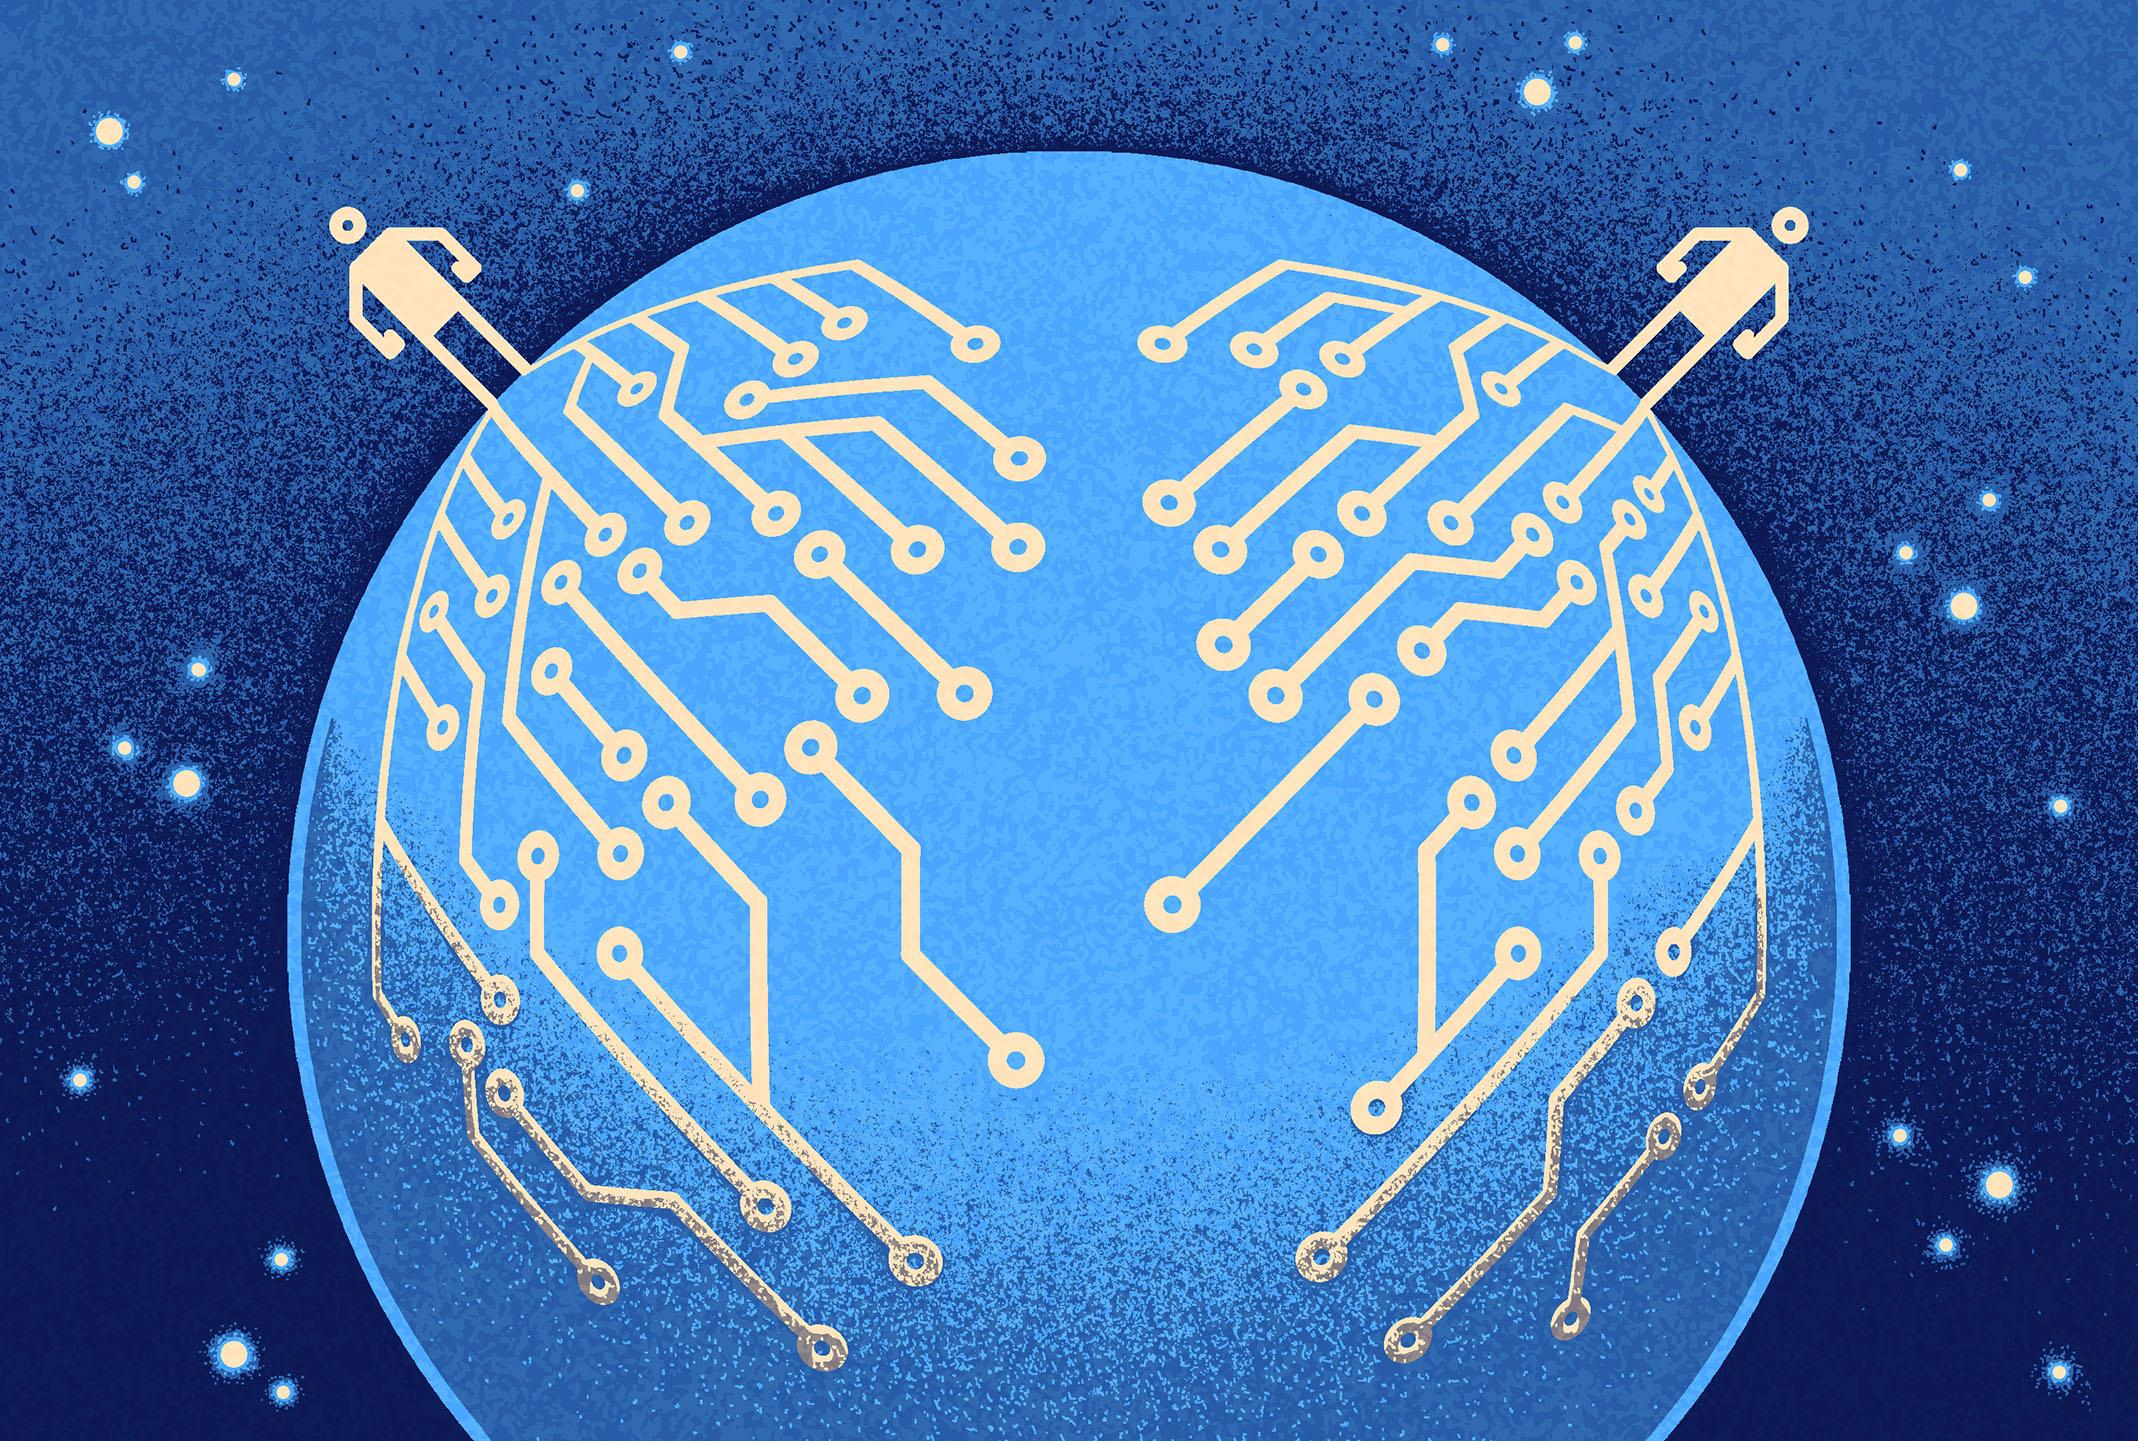 The global battle for the internet is just starting